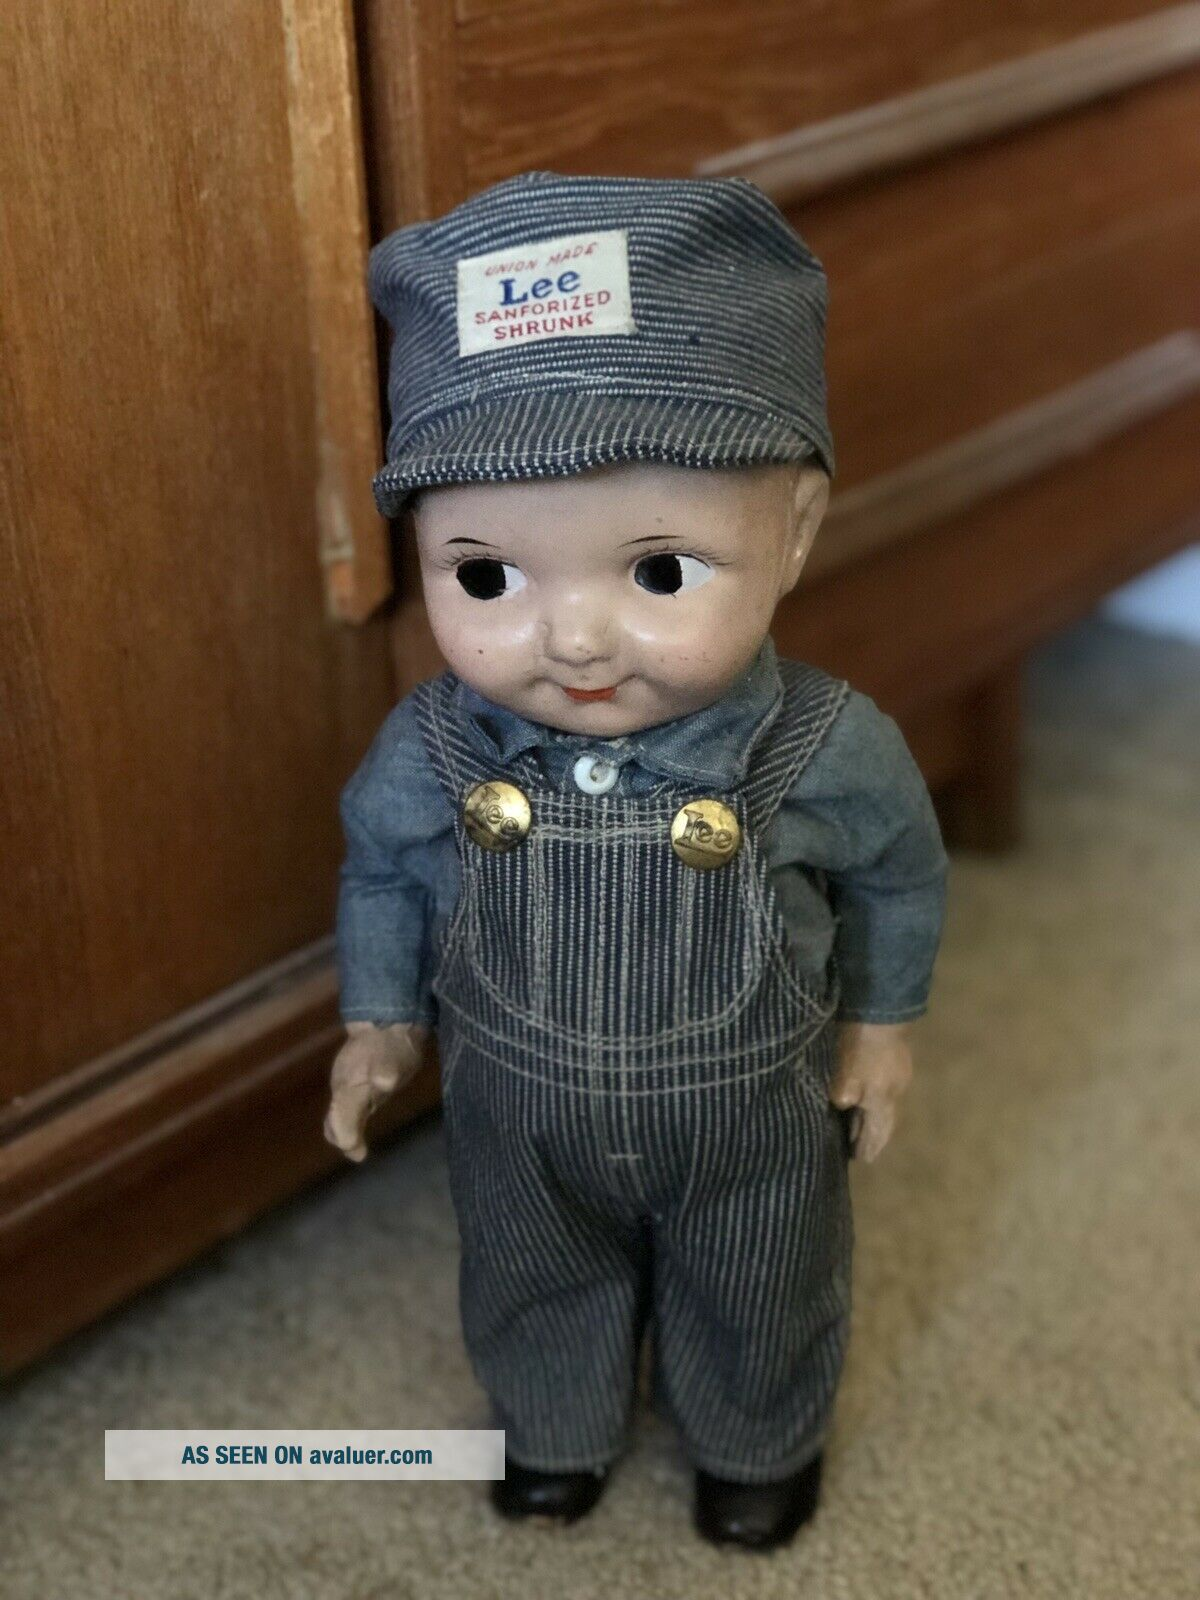 VTG Buddy Lee Hard Conposition Railroad Doll Union Made Striped Overalls Hat